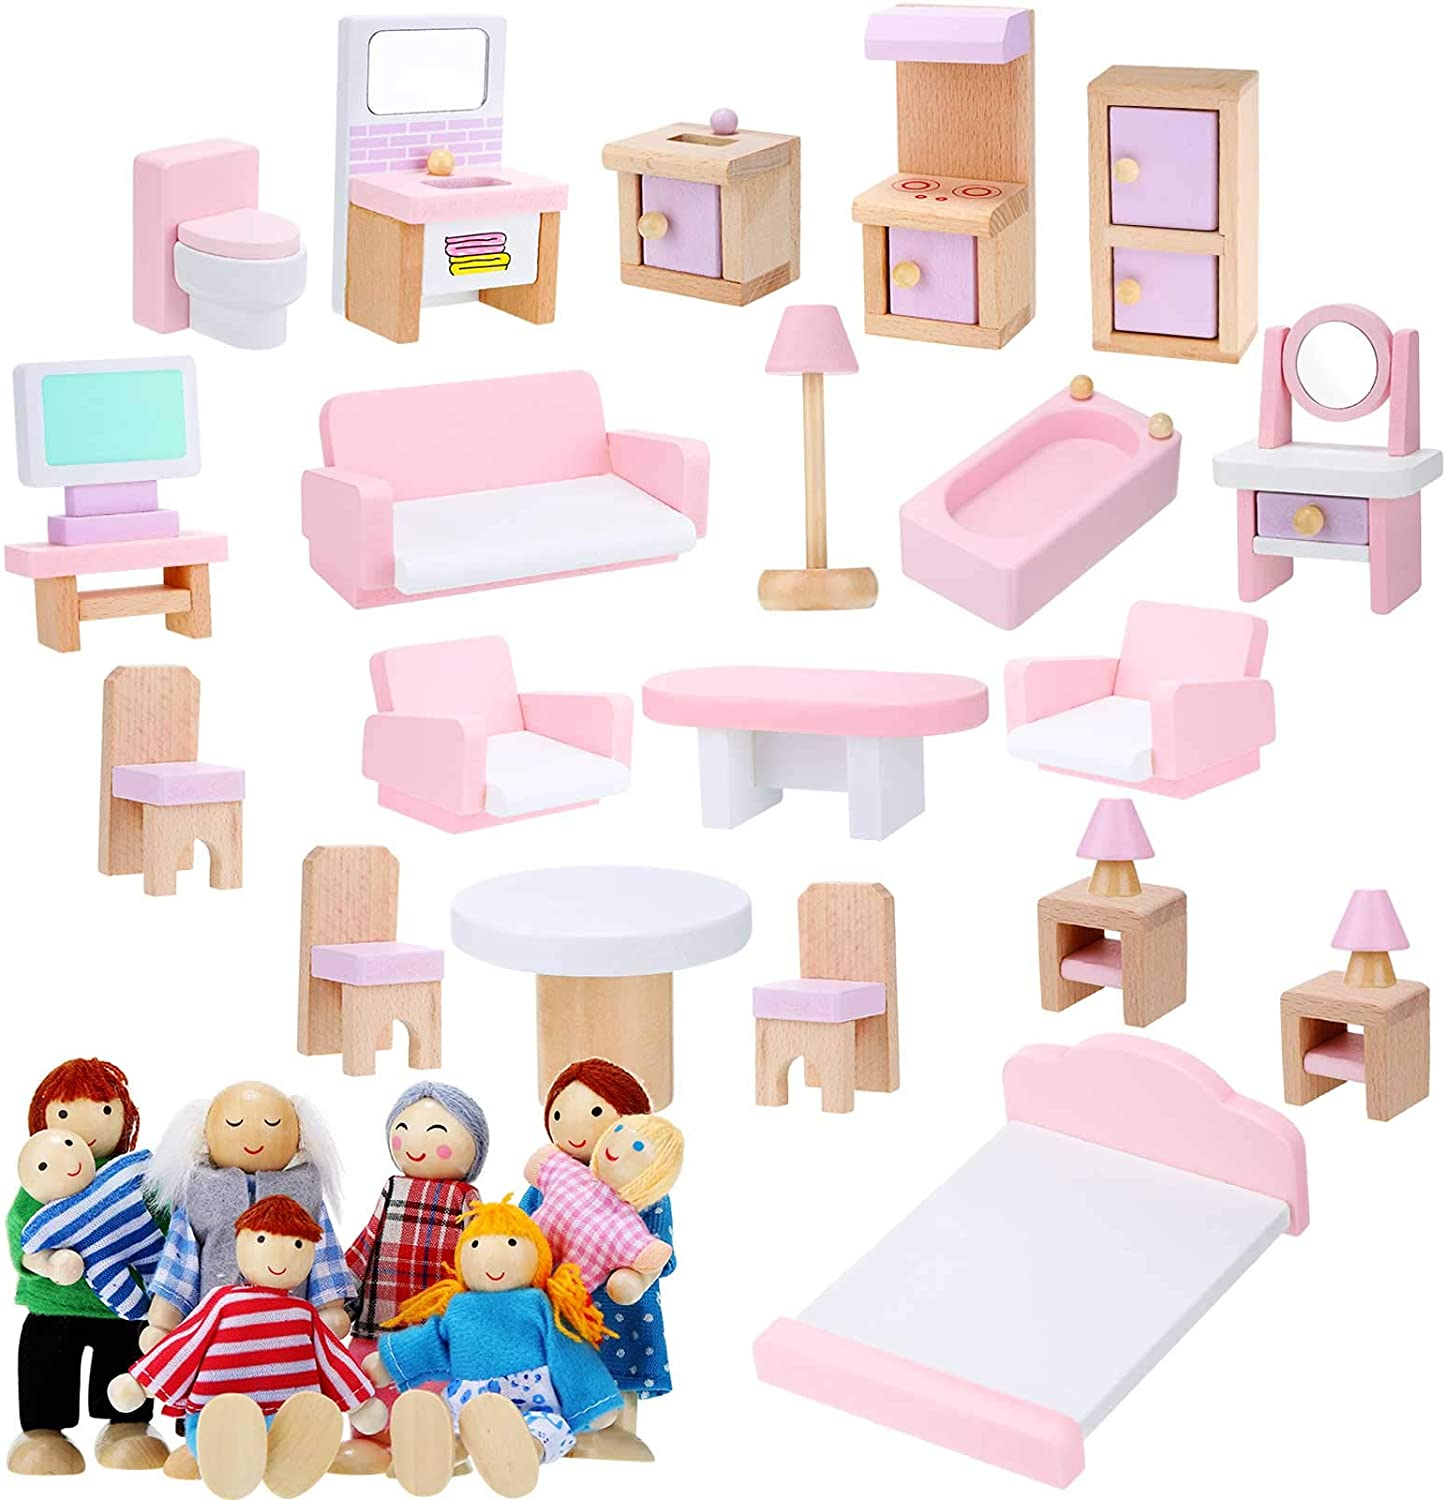 Wooden Dollhouse Furniture Doll House Furnishings with 8 Pieces Winning Doll Family Set, Dollhouse Accessories for Boys Girls Miniature Dollhouse, Family Figures Imaginative Play Toy (Pink Style)